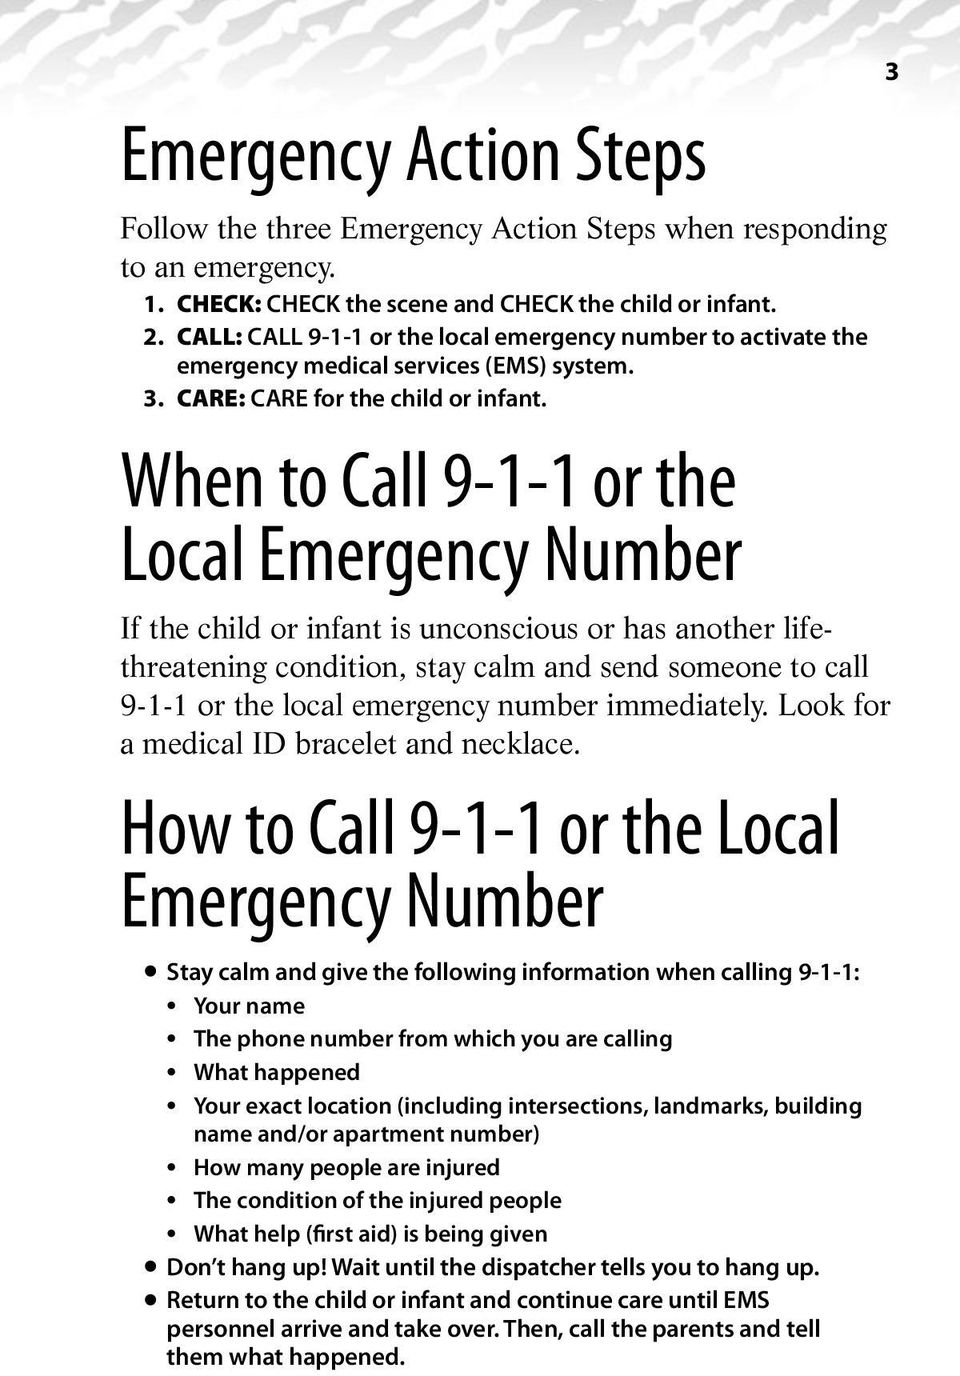 When to Call 9-1-1 or the Local Emergency Number If the child or infant is unconscious or has another lifethreatening condition, stay calm and send someone to call 9-1-1 or the local emergency number